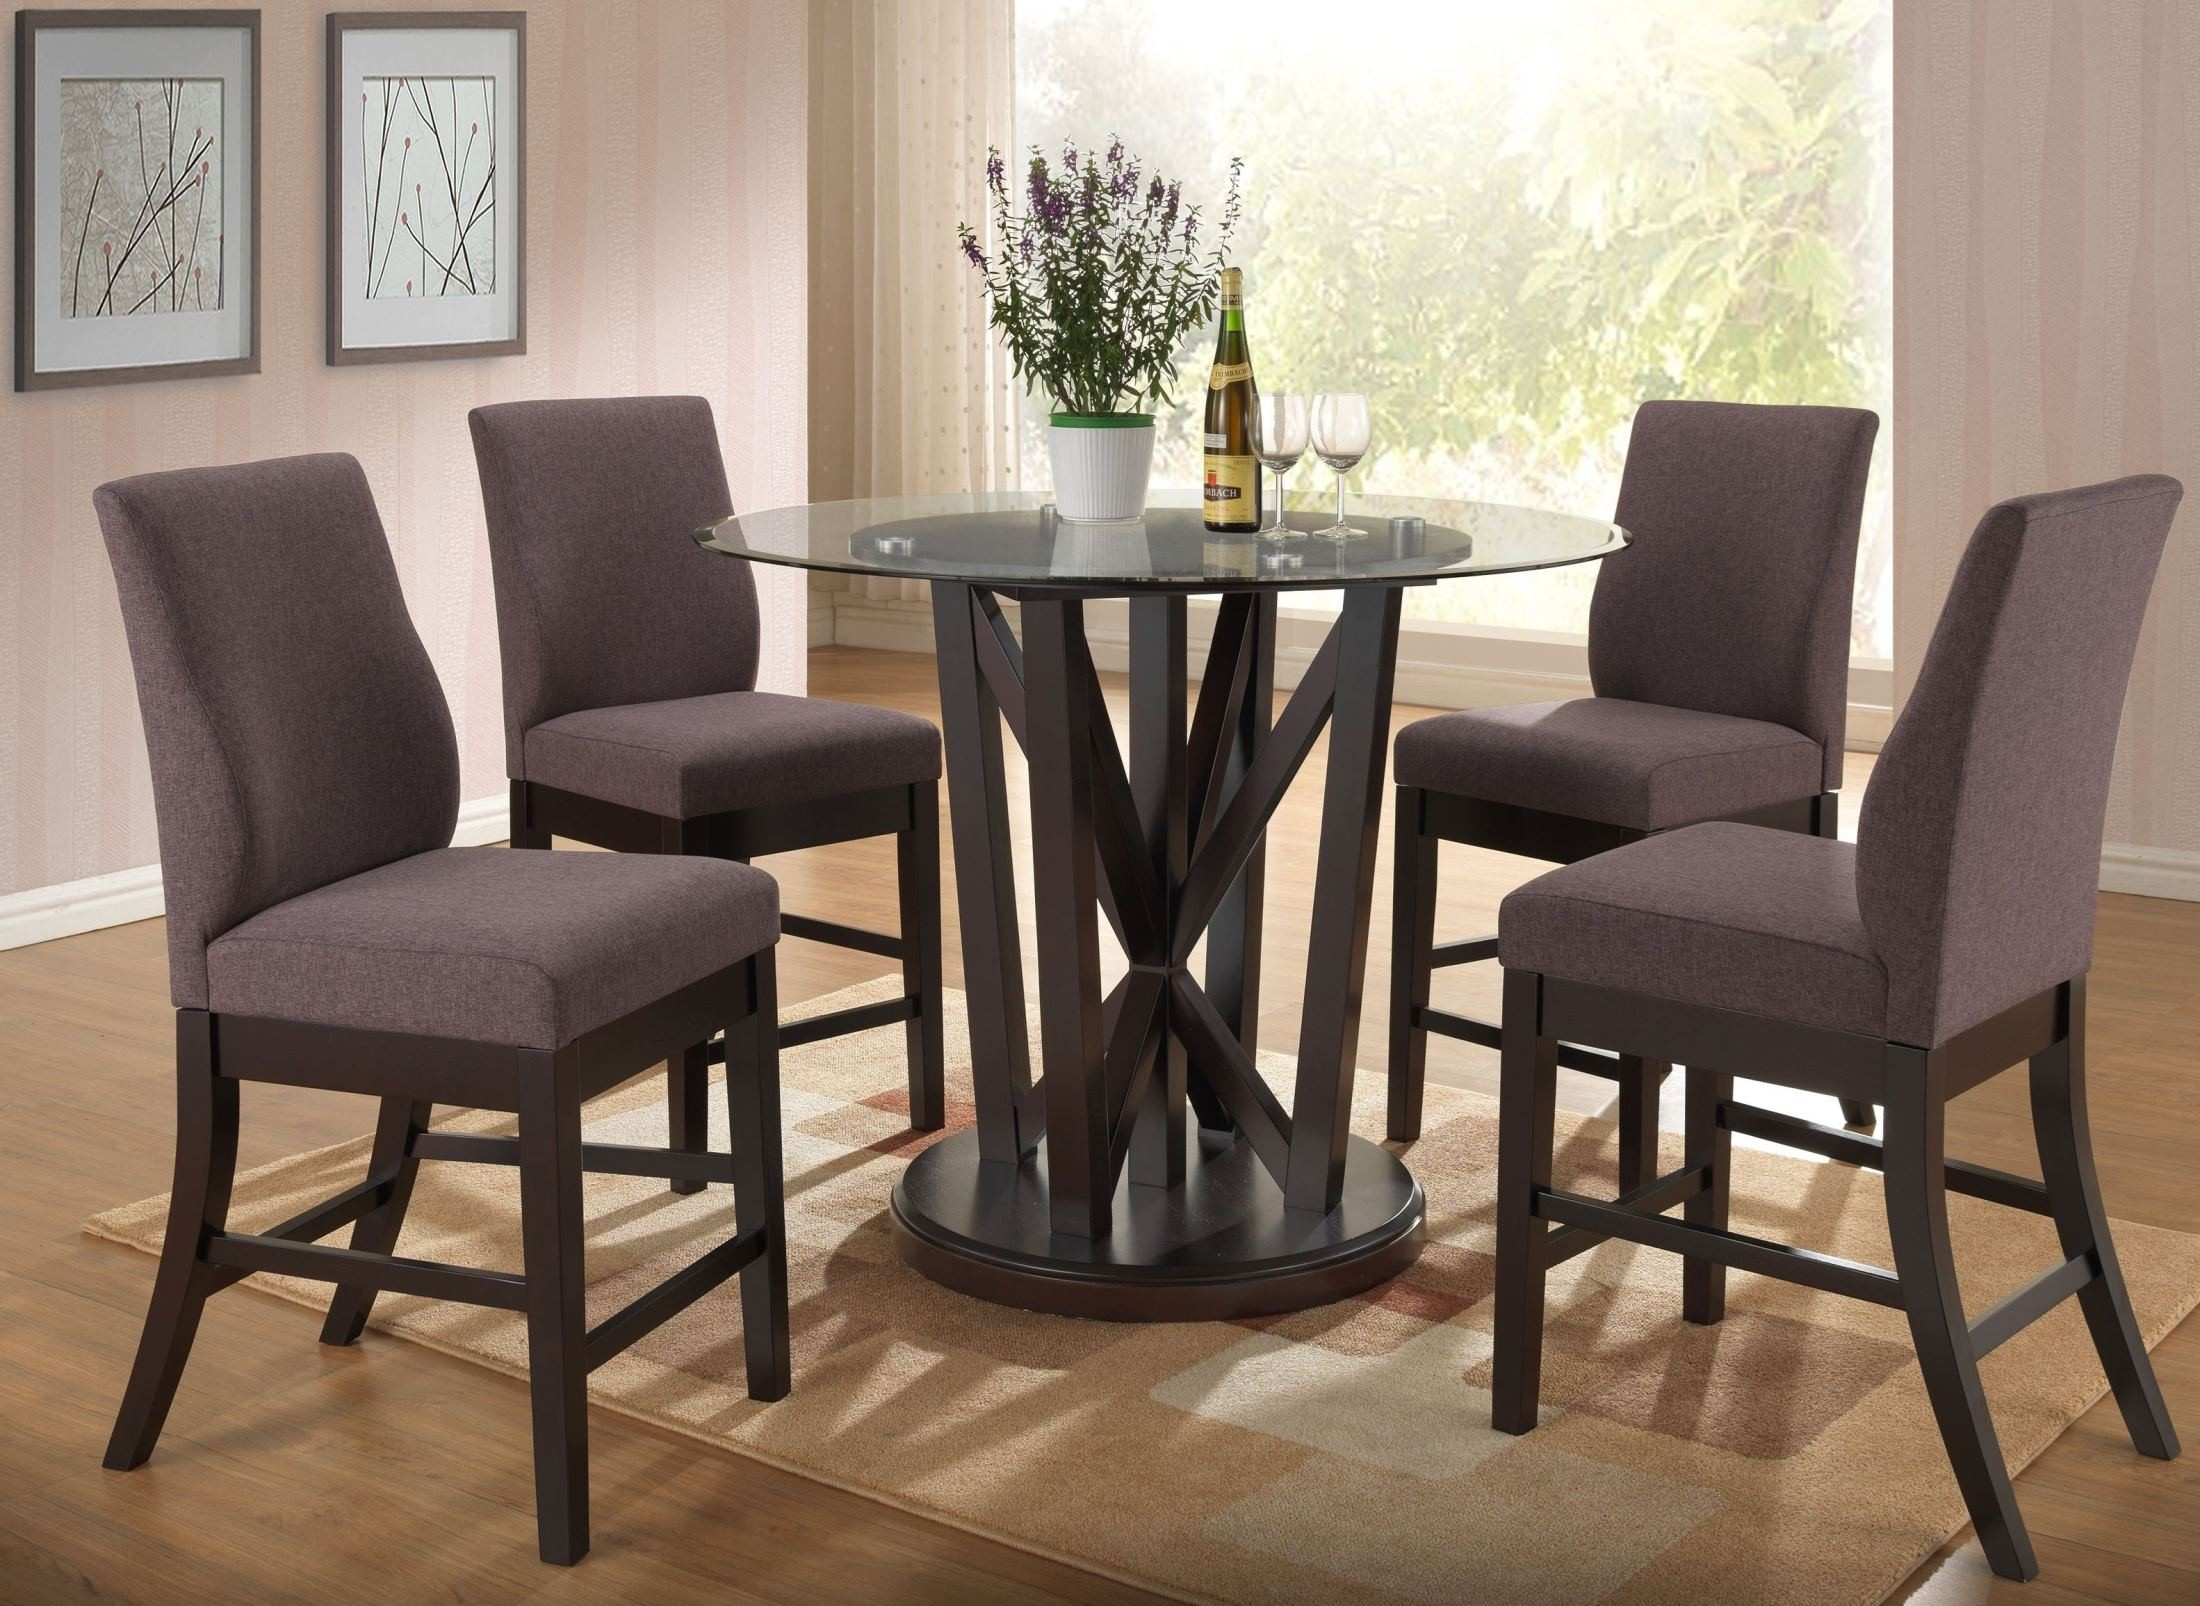 natasha cappuccino round glass counter height dining table d3972 13gt